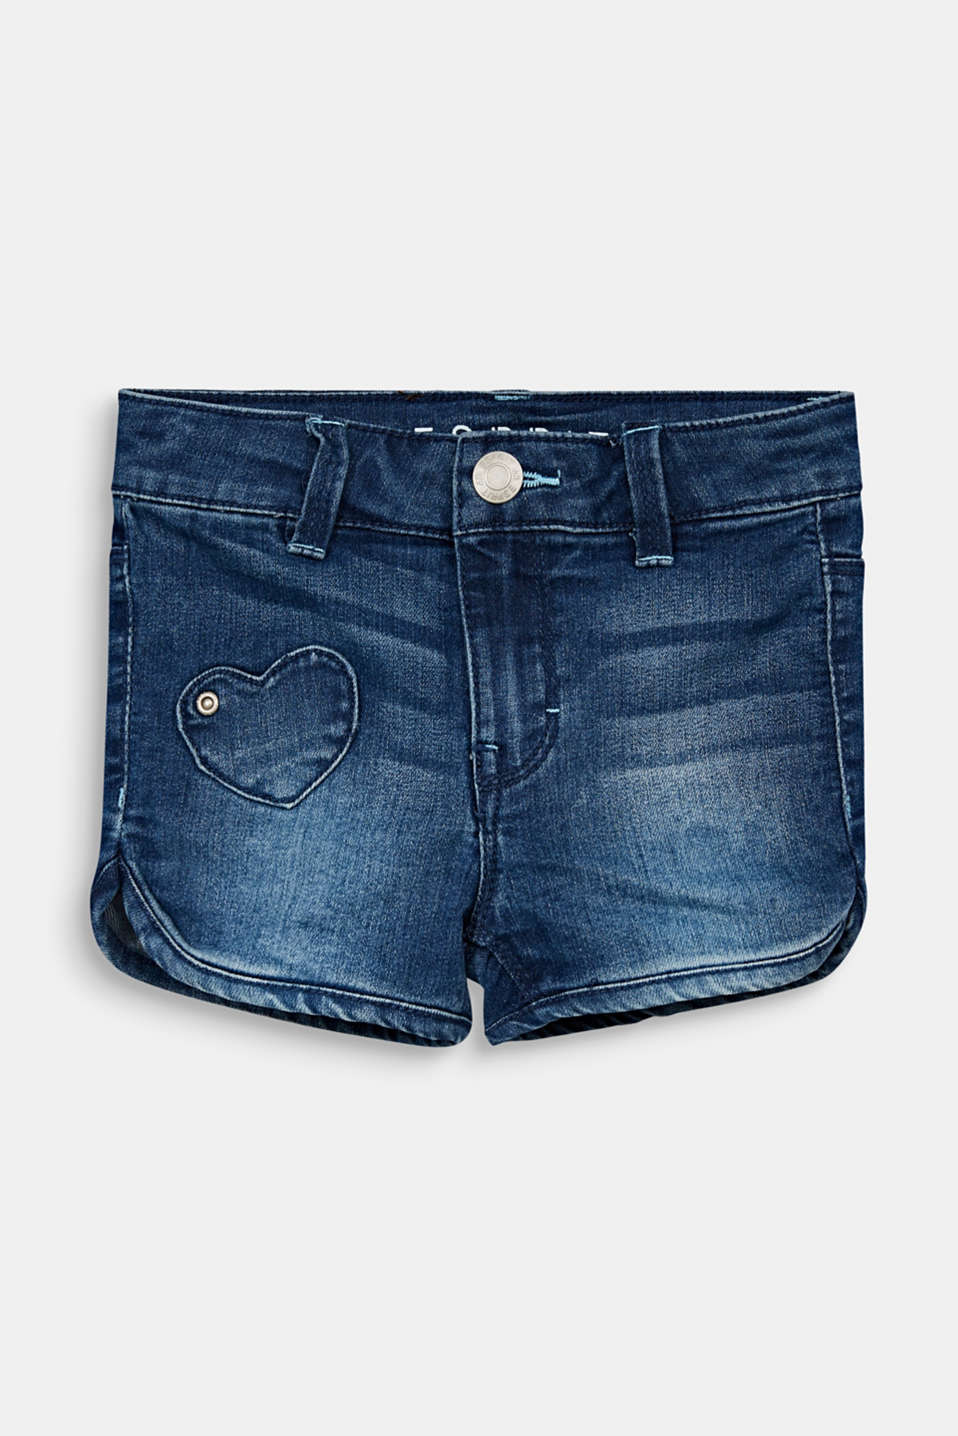 Esprit - Shorts in denim con toppe a cuore